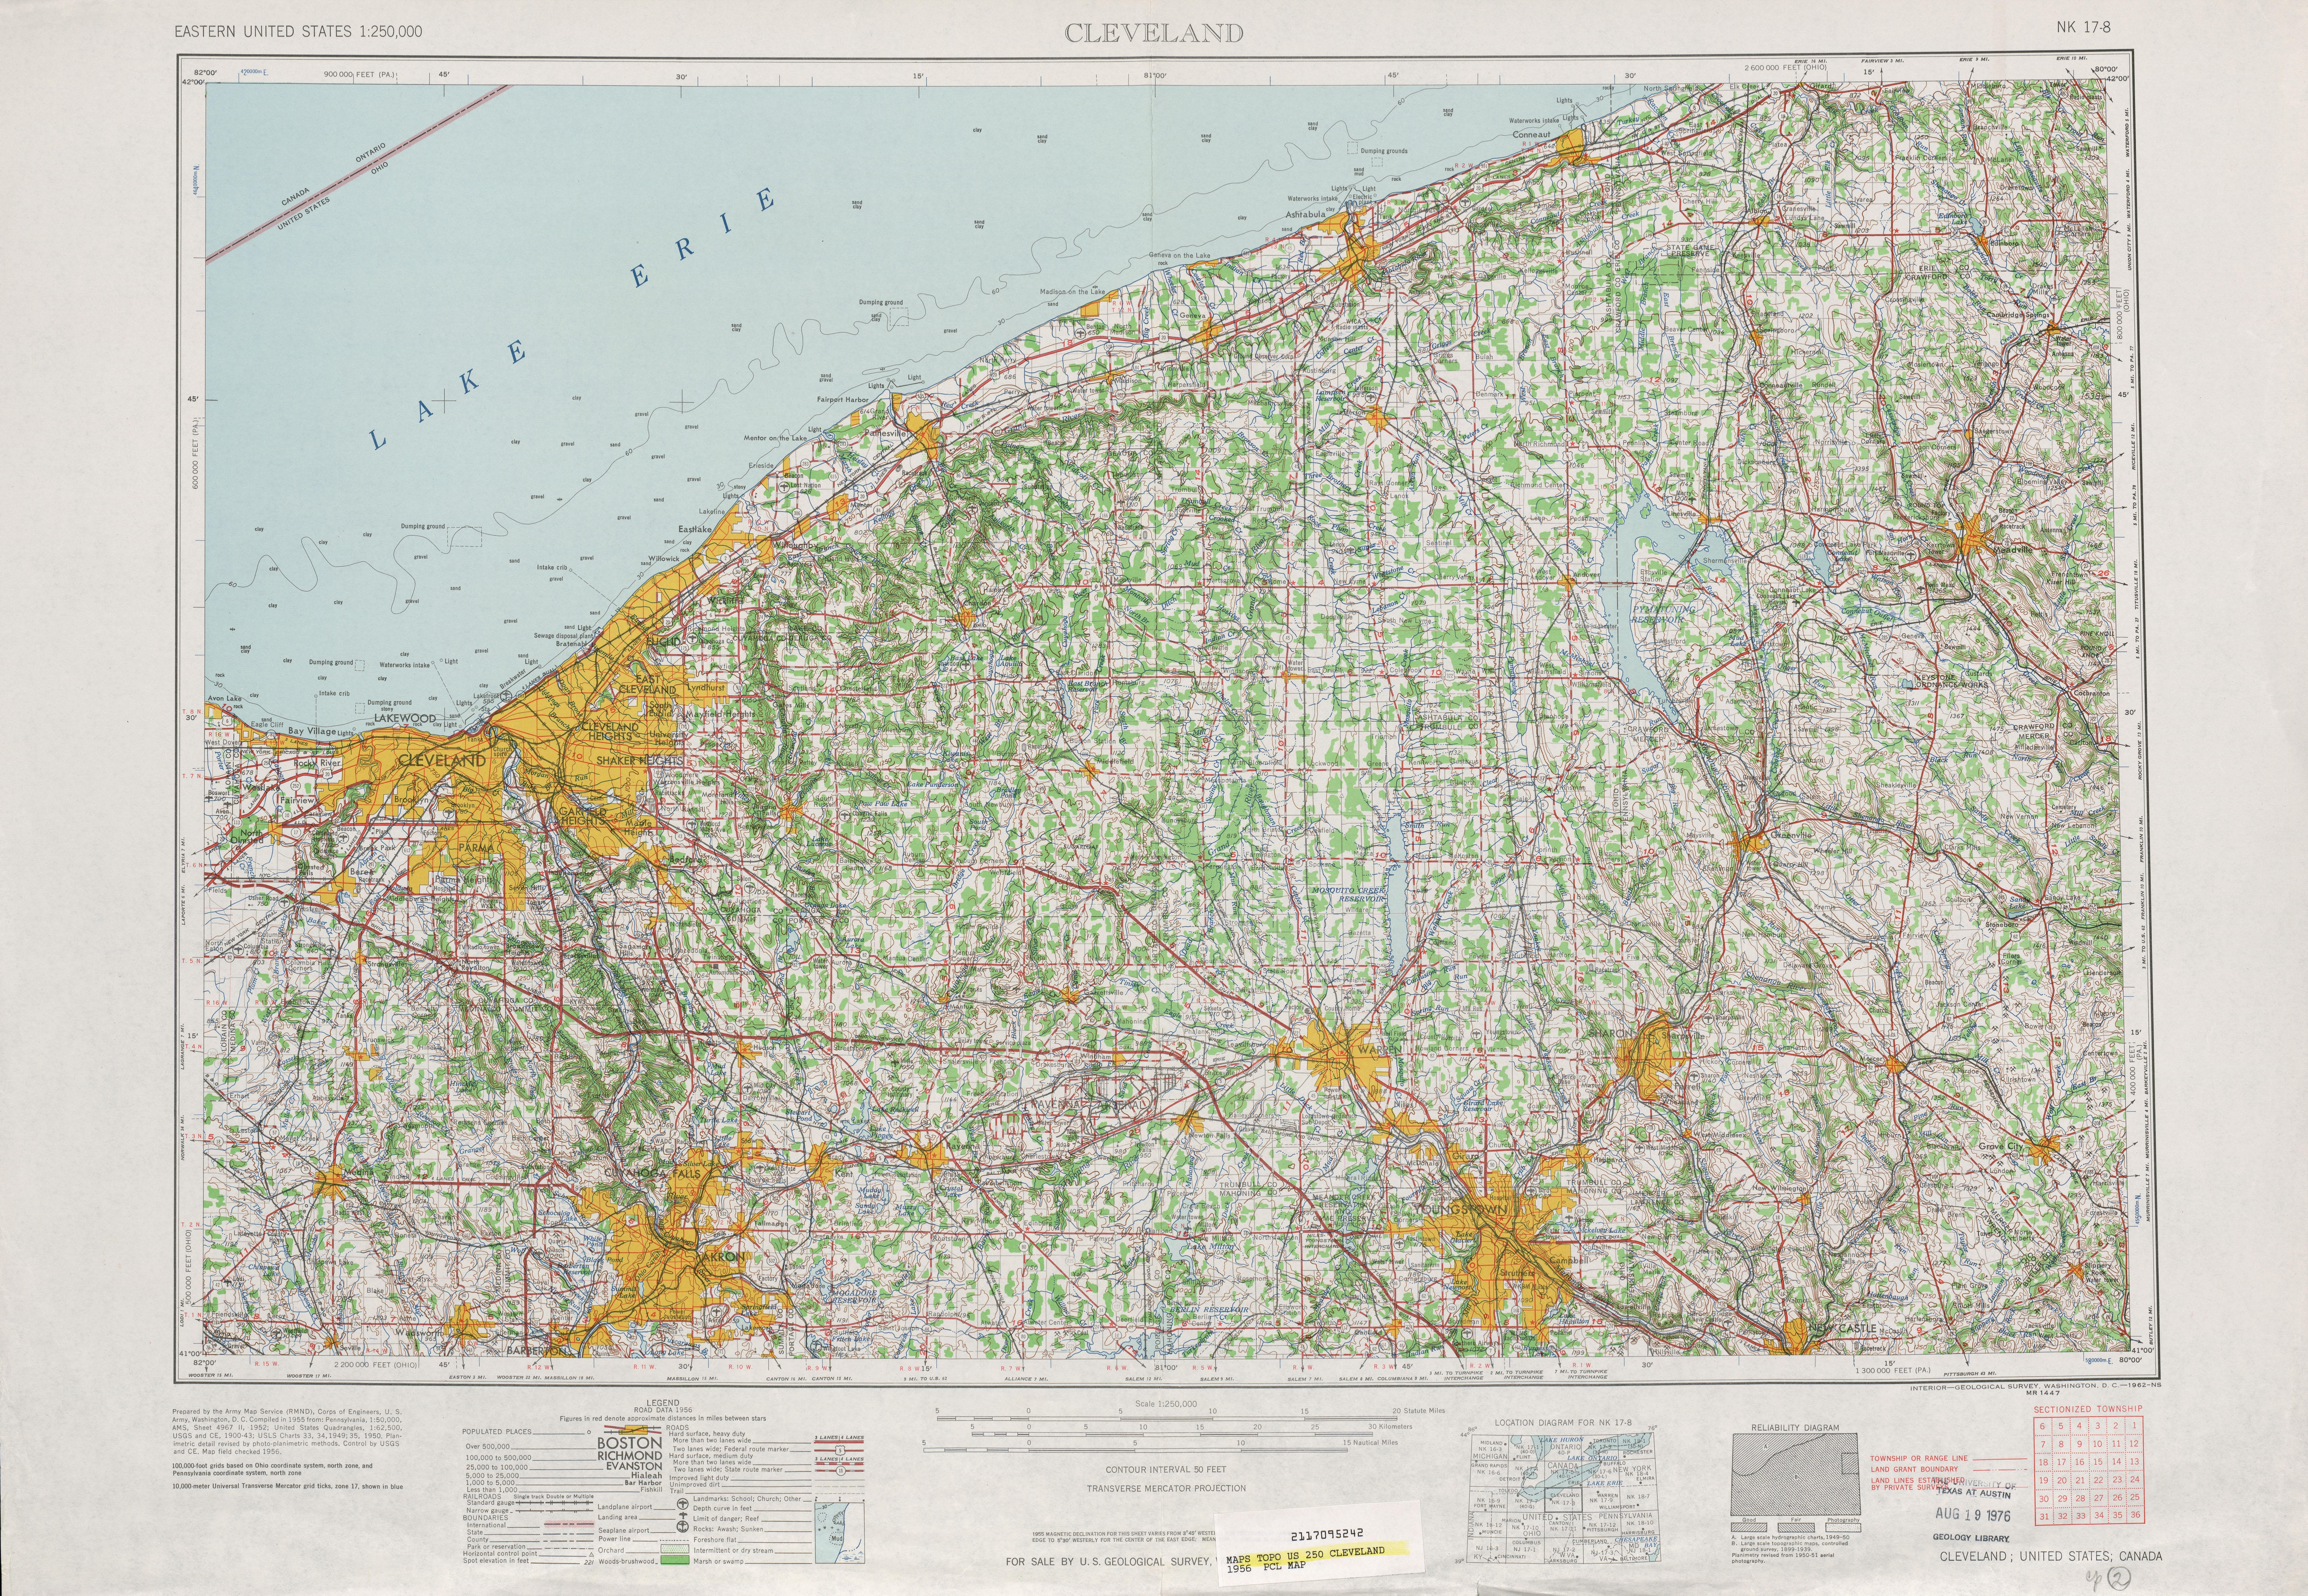 Cleveland Topographic Map Sheet, United States 1956